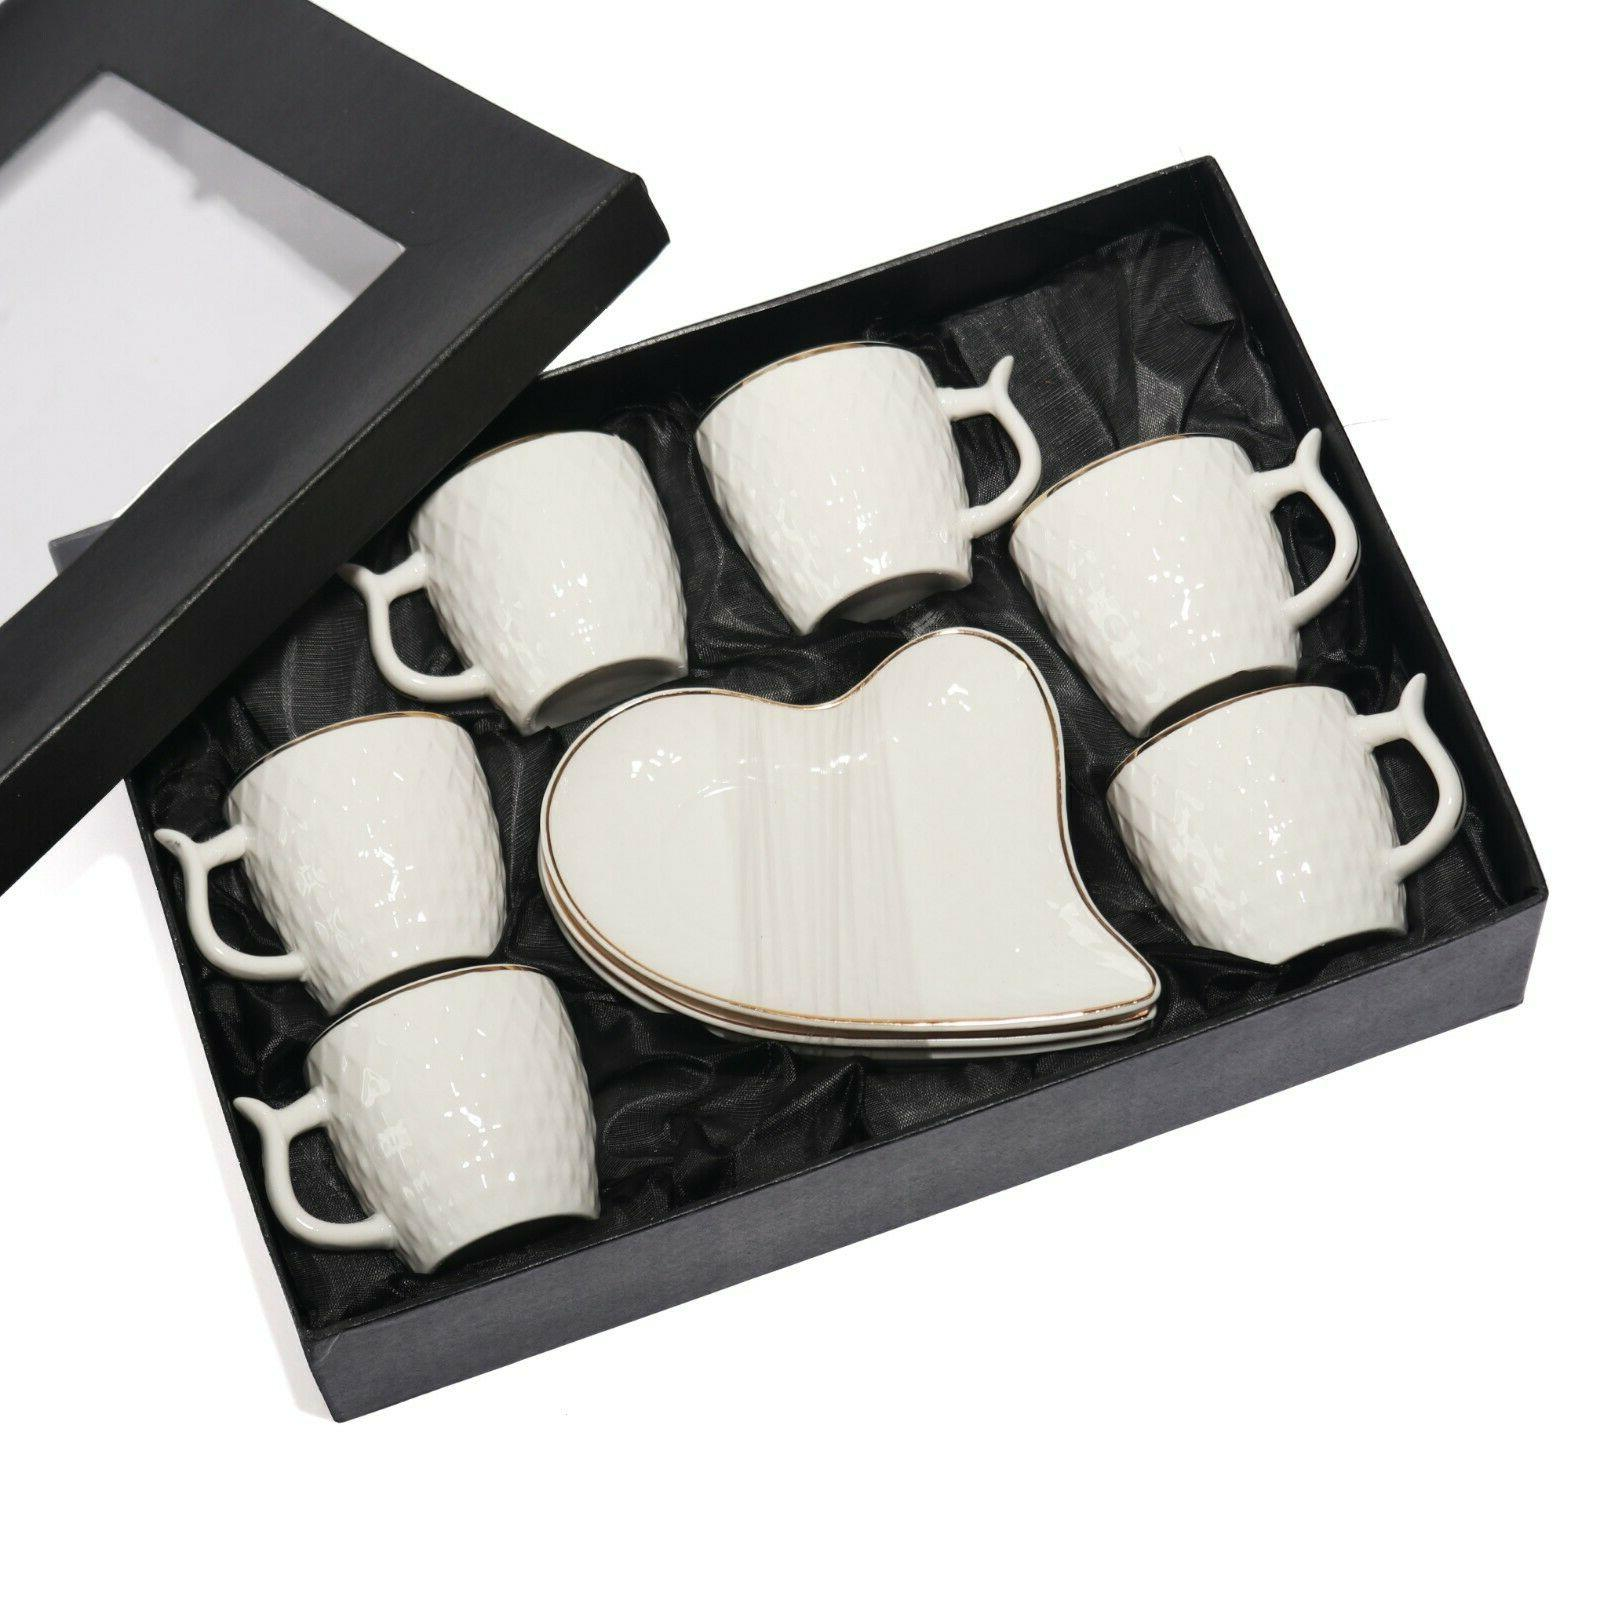 Espresso Coffee Cups Set White Porcelain Tazas Cafe Espresso